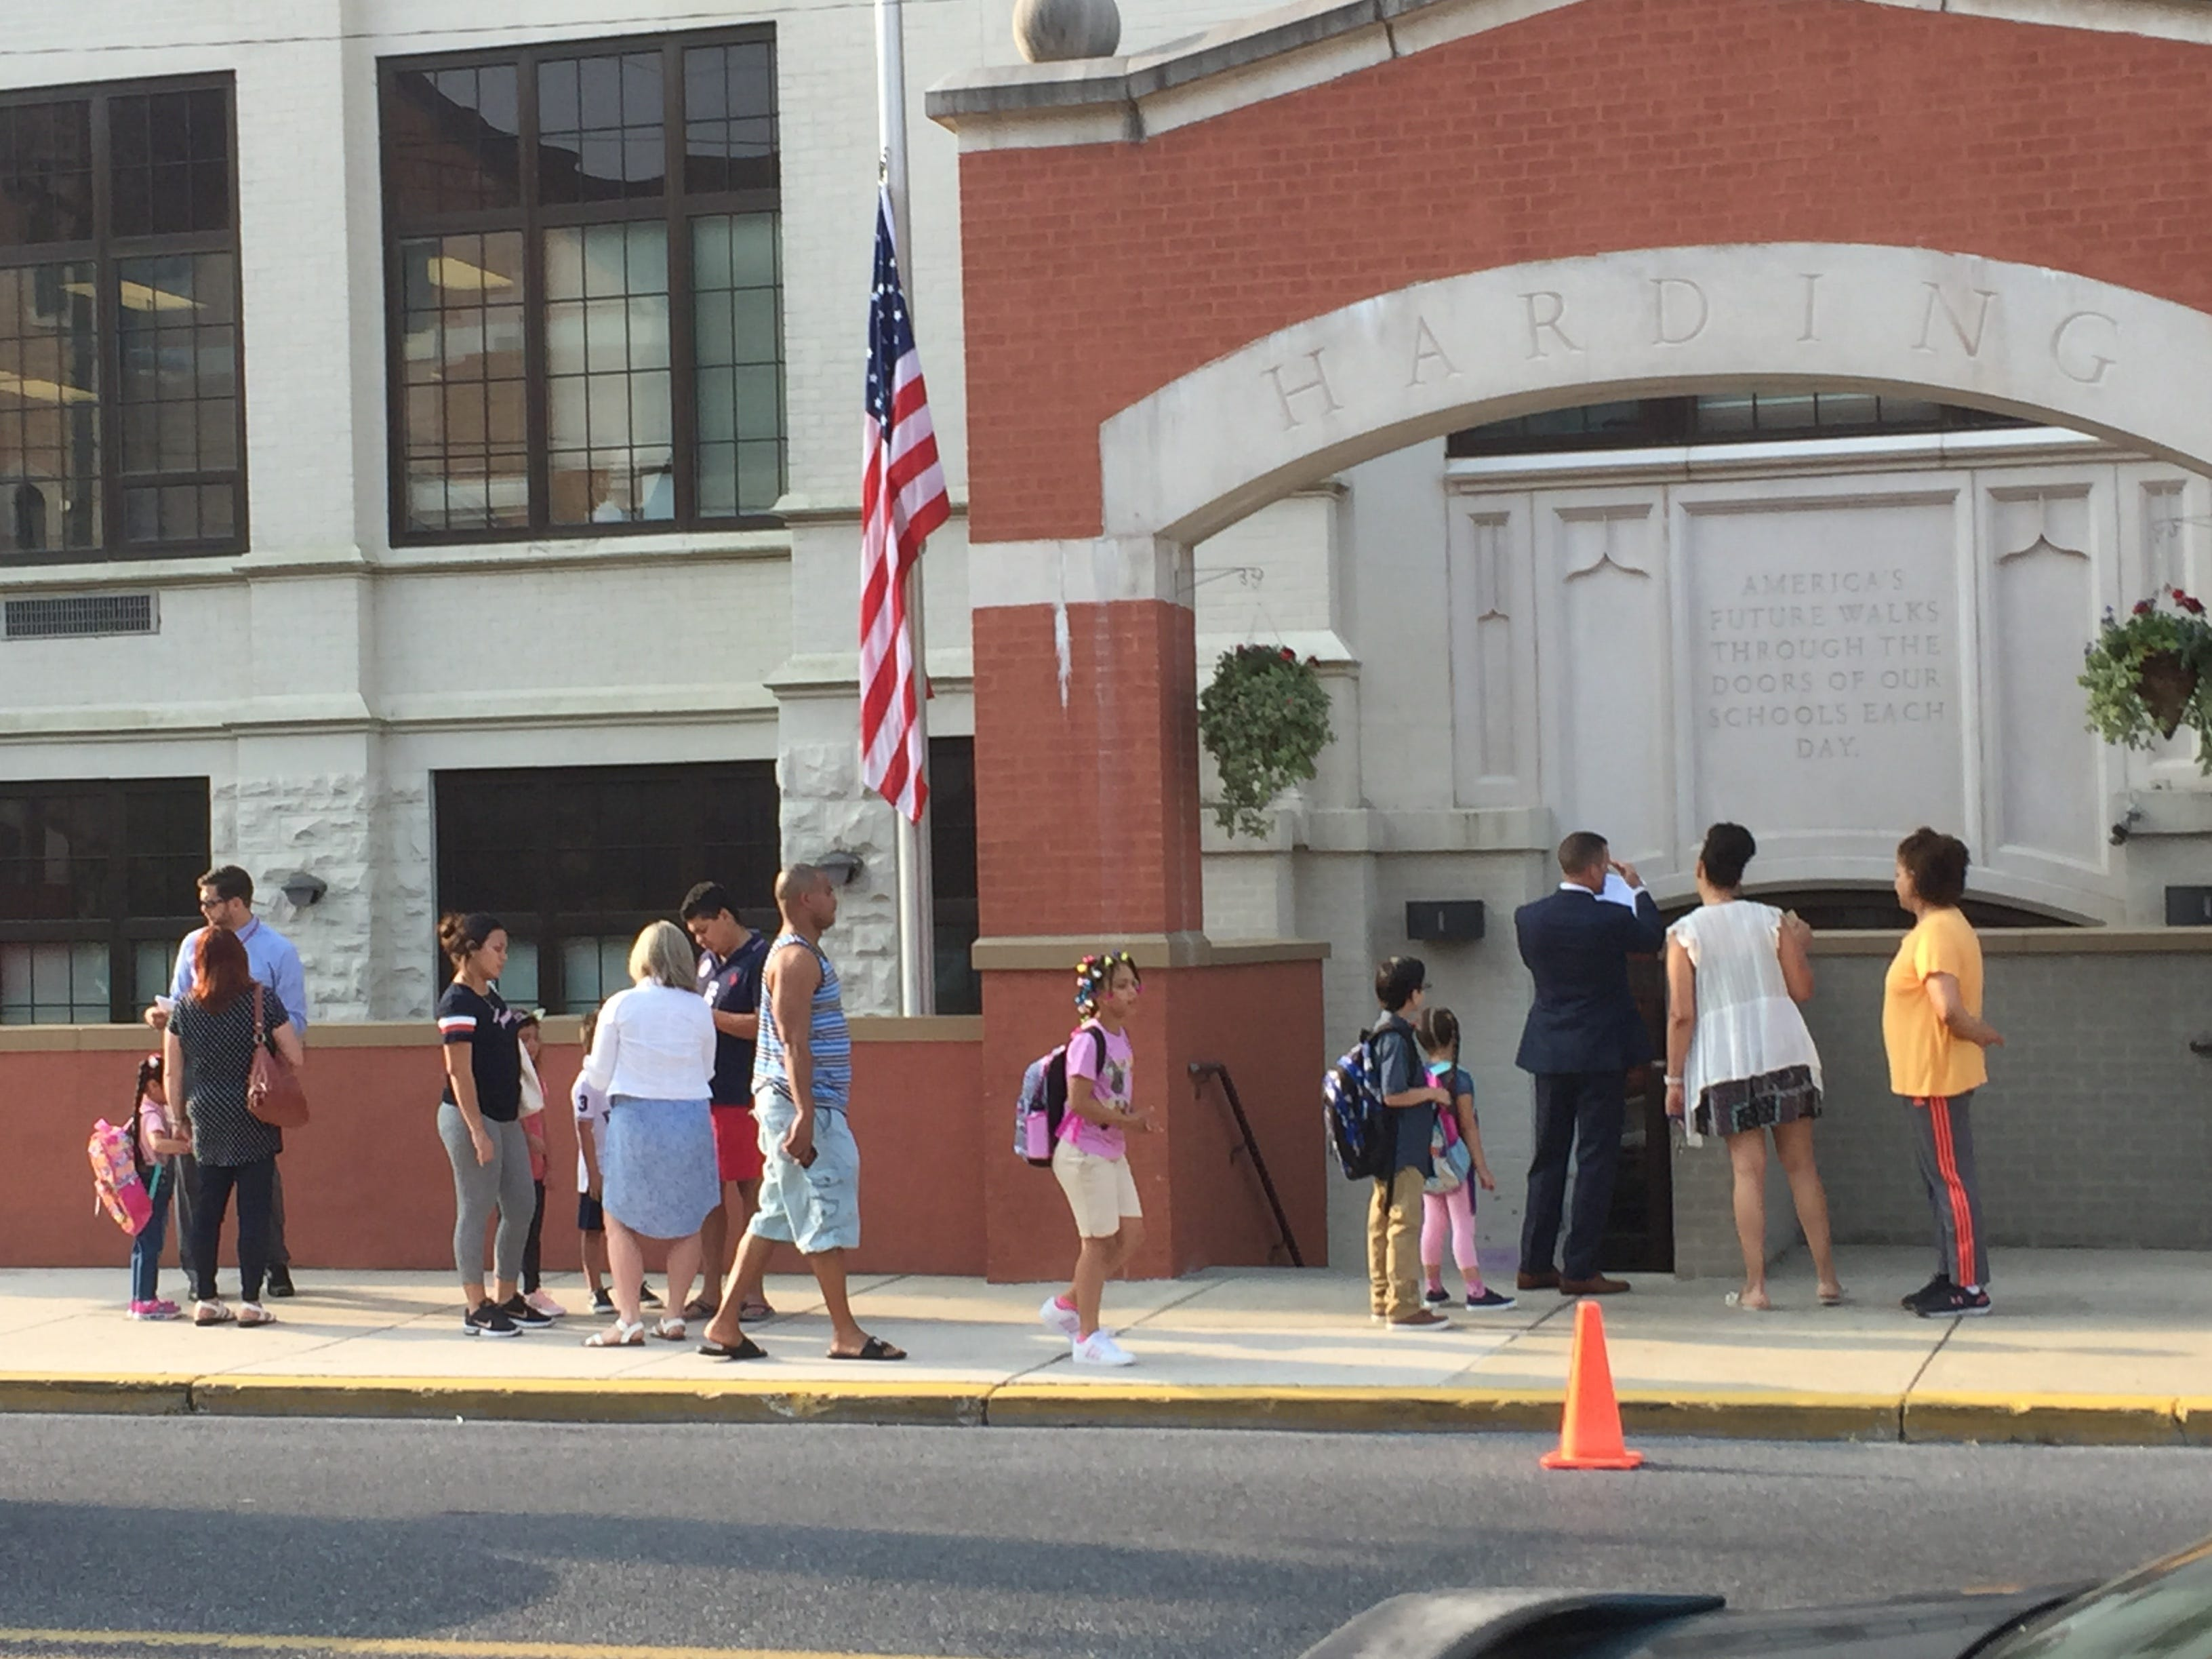 Students stream in for the first day of school at Harding Elementary on Monday, Aug. 27.